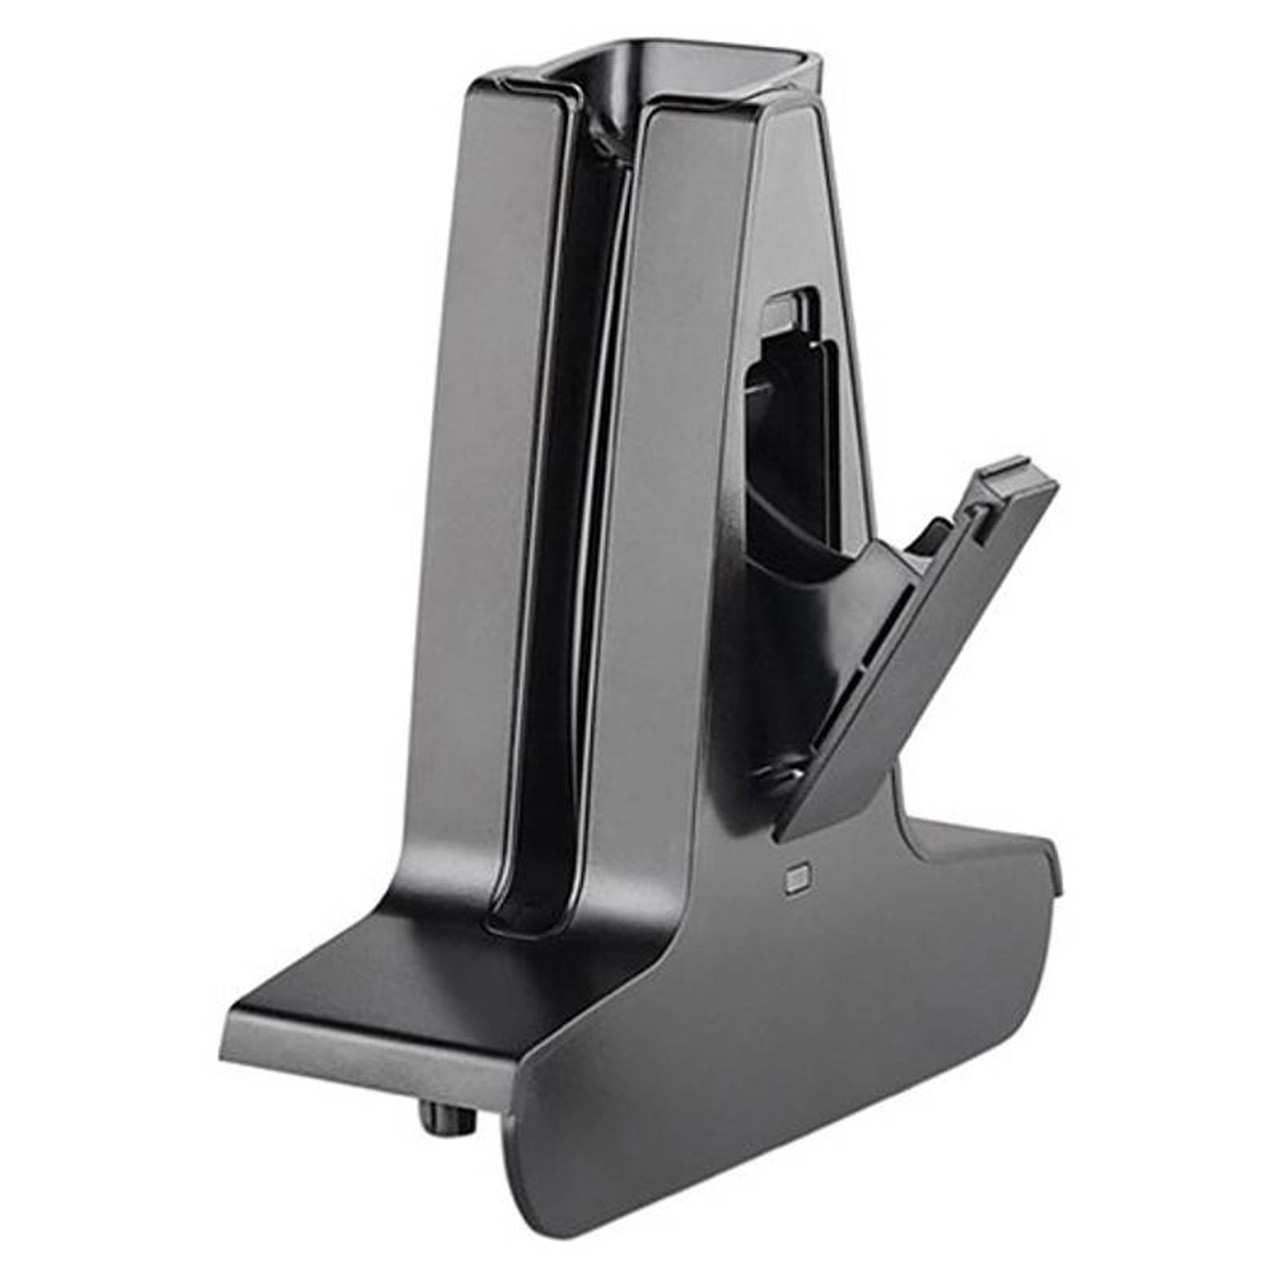 Image for Plantronics Savi Base Deluxe Charge Cradle for W740/W745/W440/W445 CX Computer Superstore